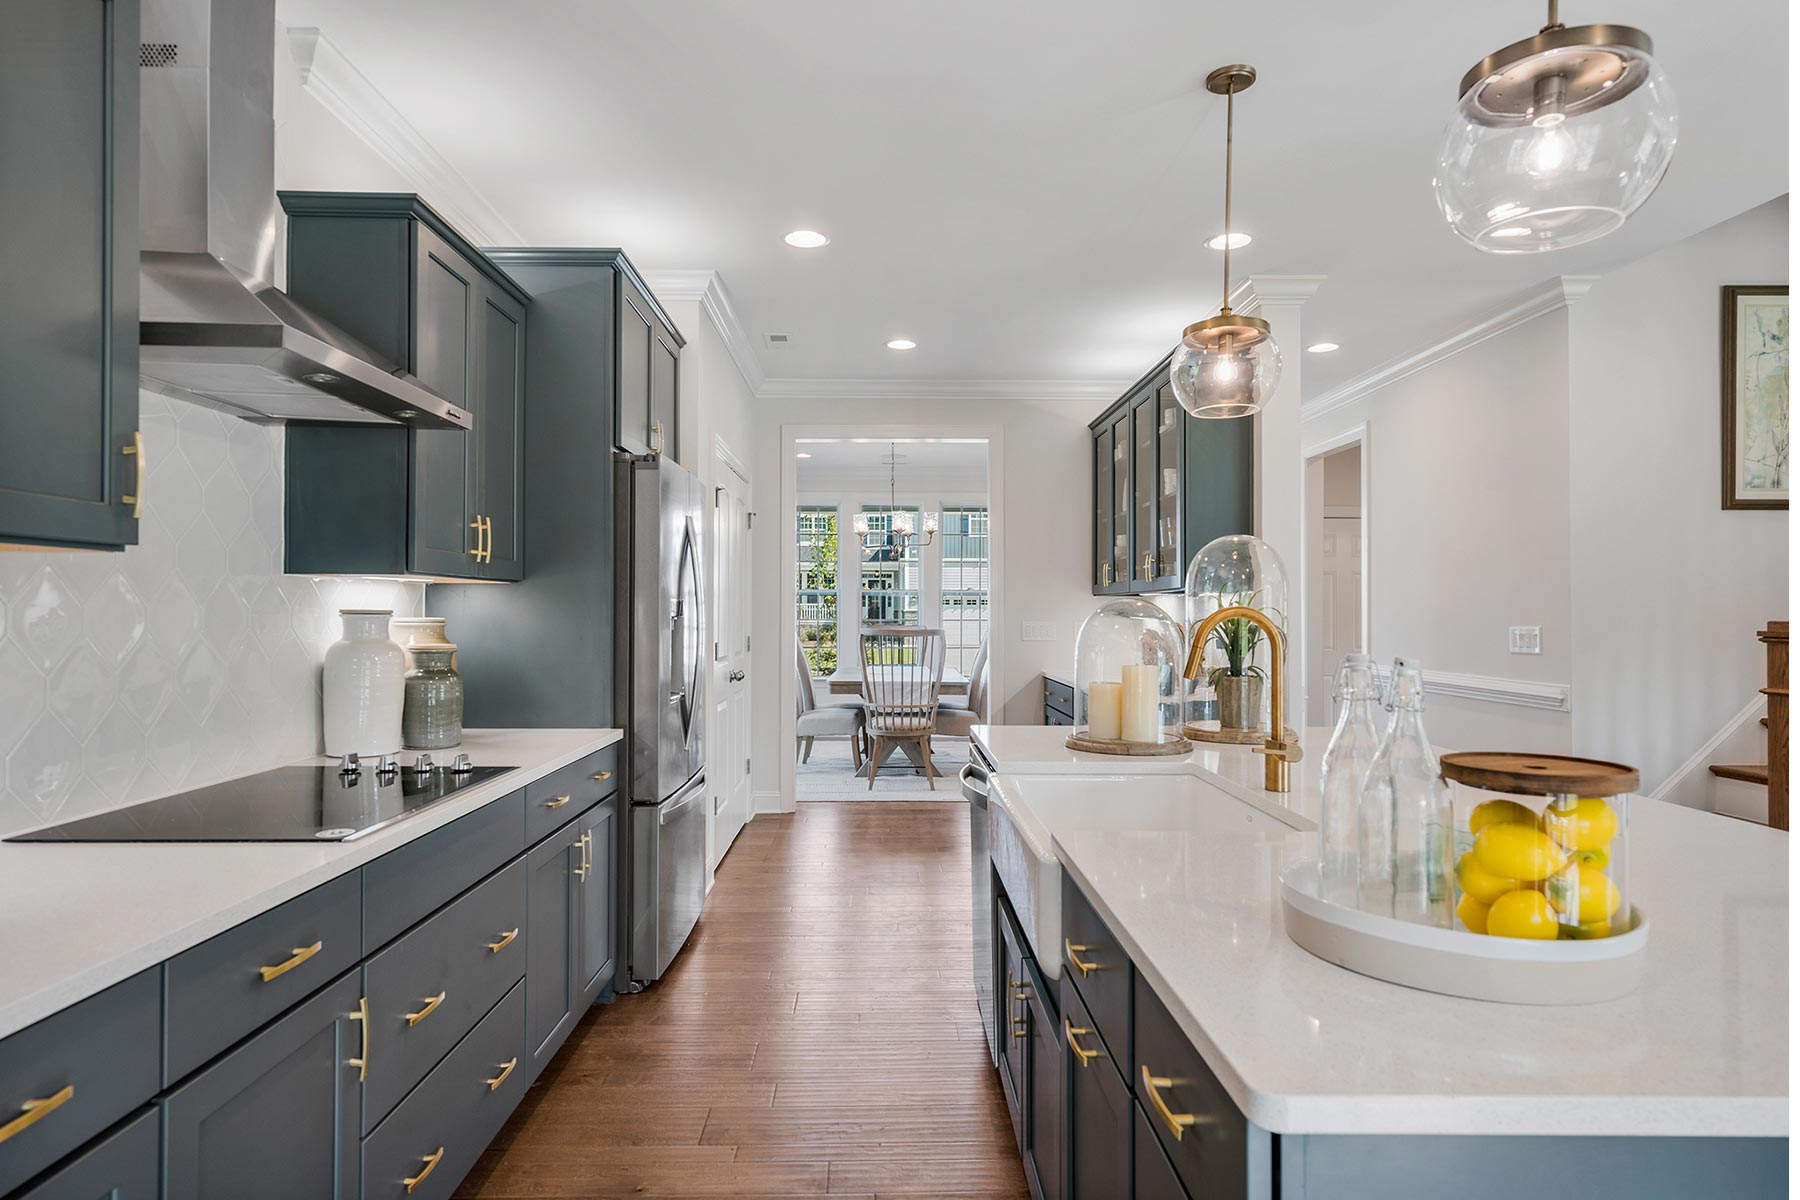 Bent Tree Kitchen in Fuquay-Varina North Carolina by Mattamy Homes